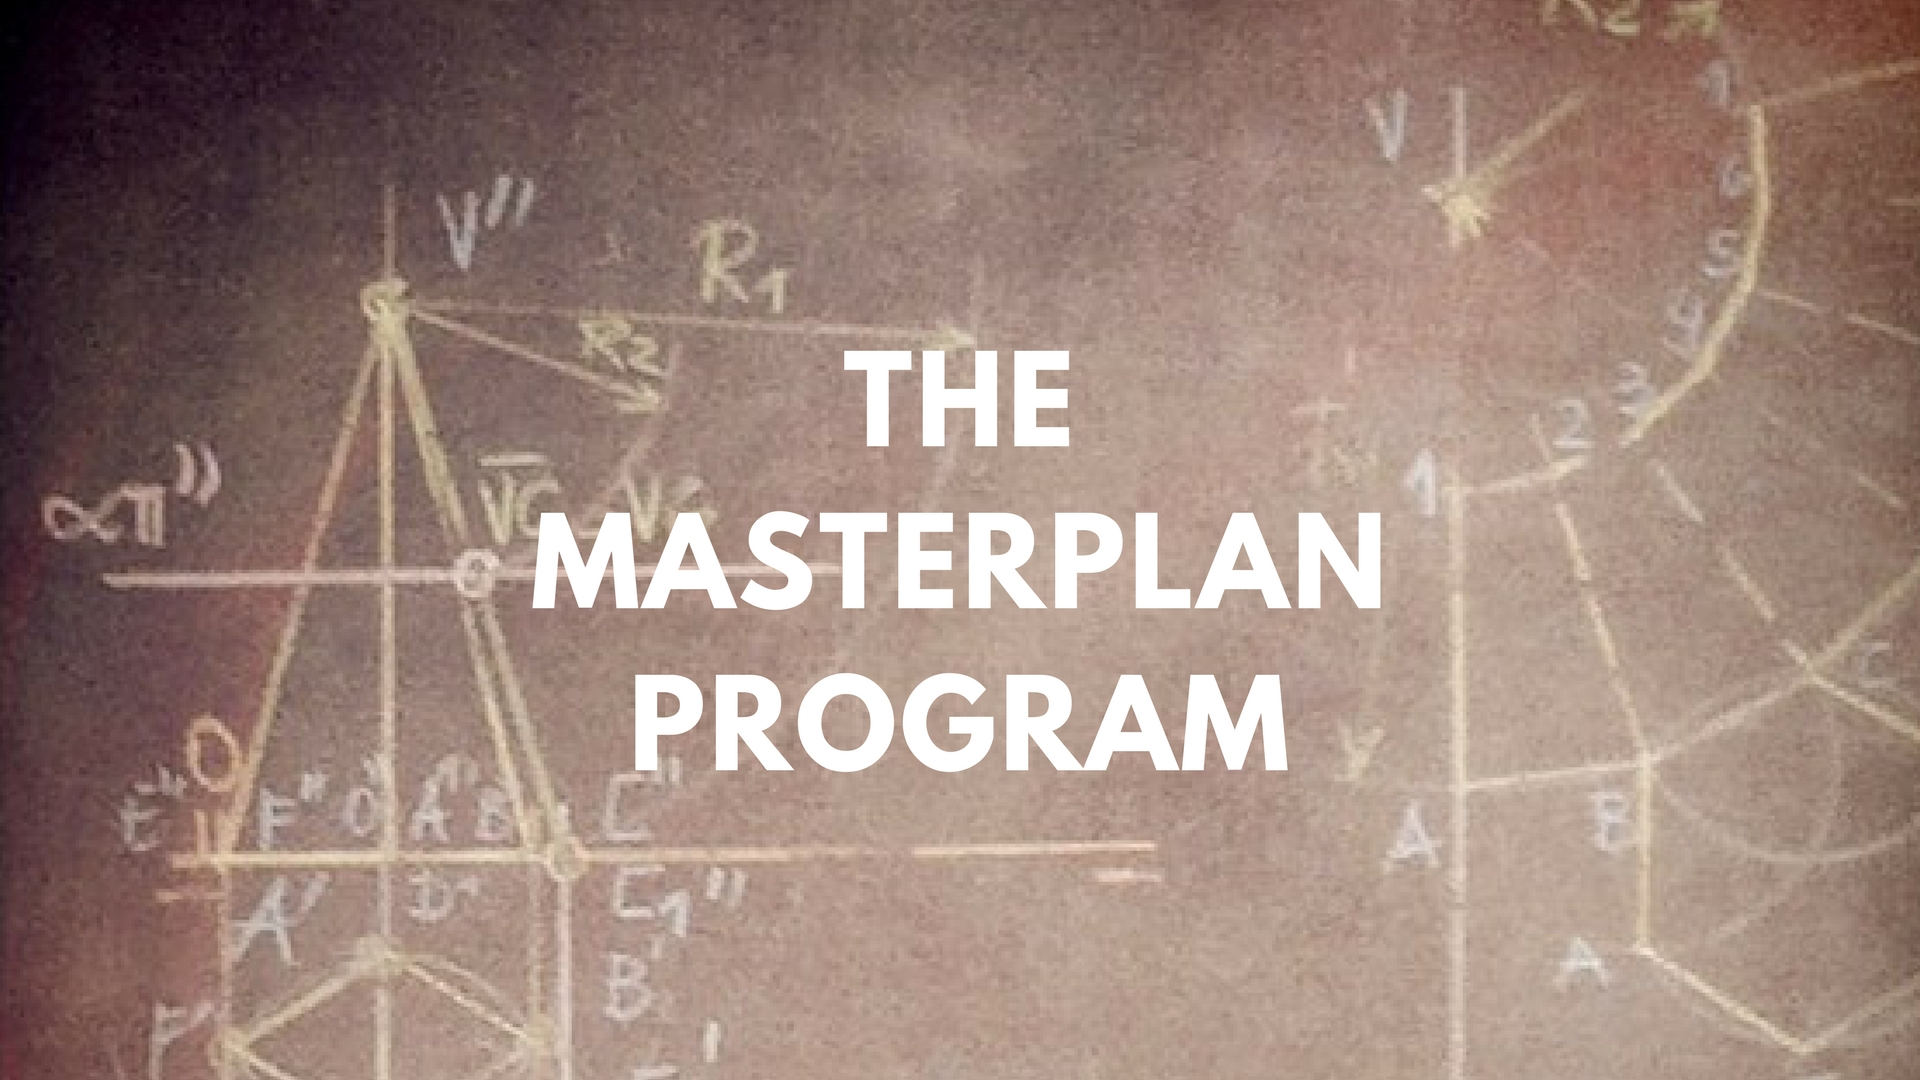 Poster for the program The Career MasterPlan